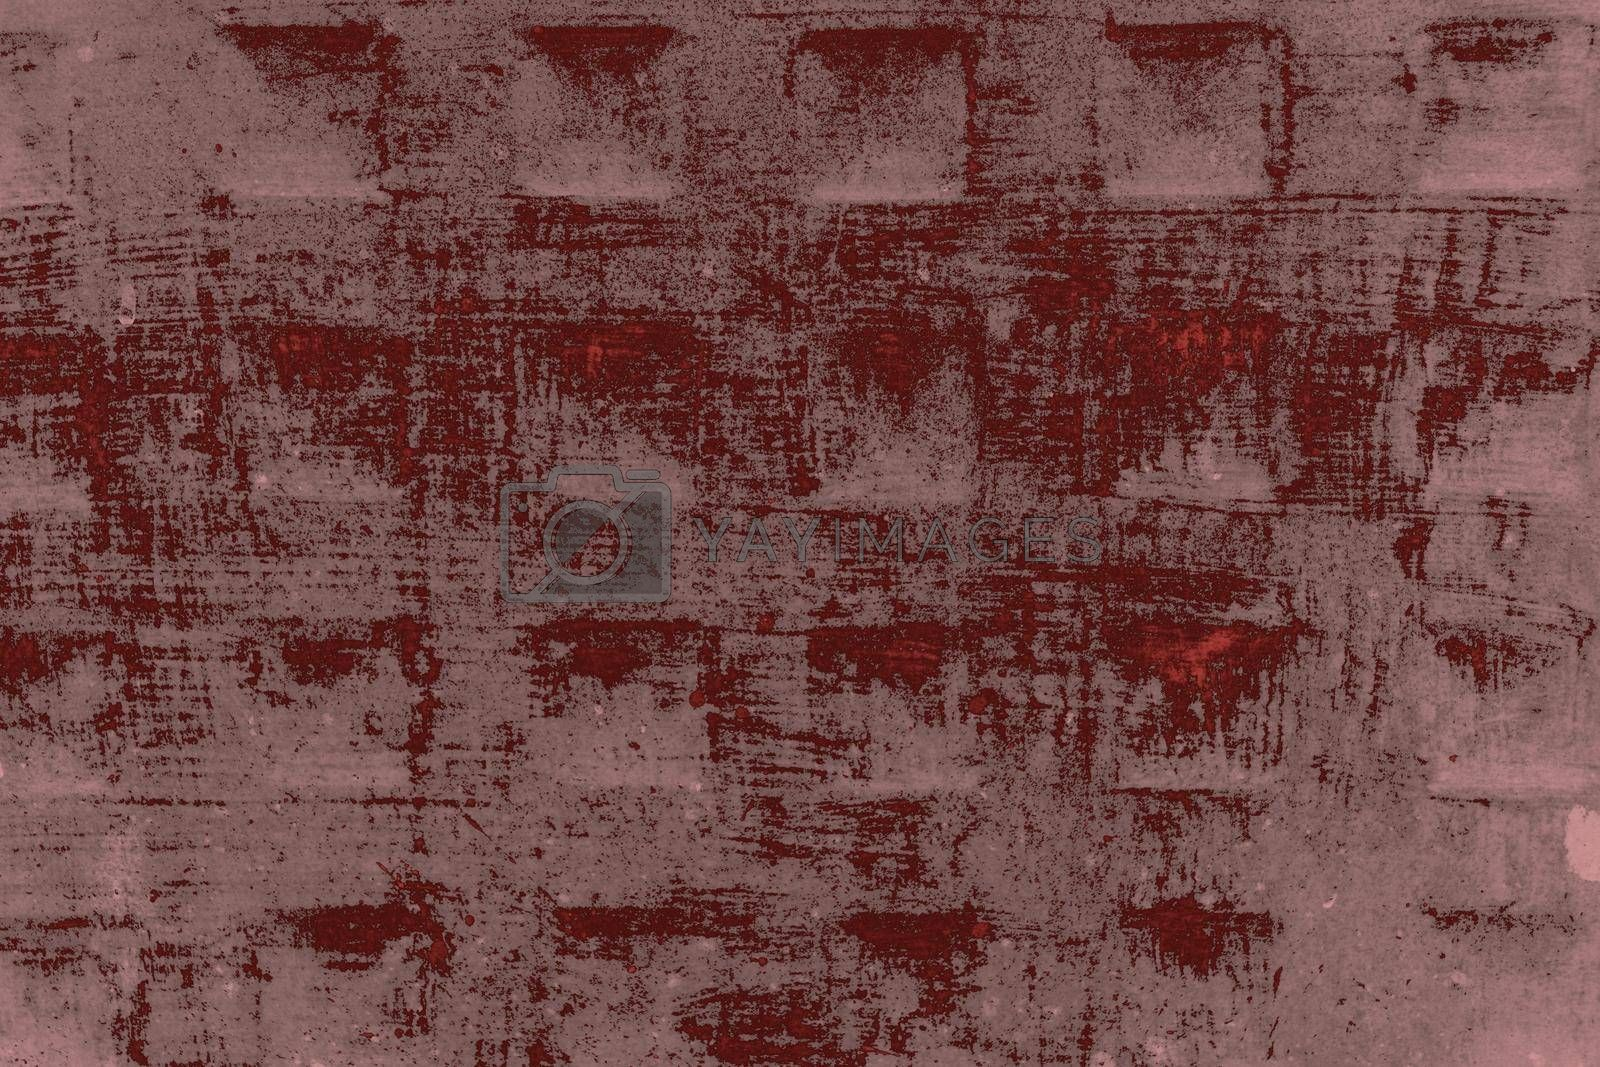 Metal surface as a background texture pattern